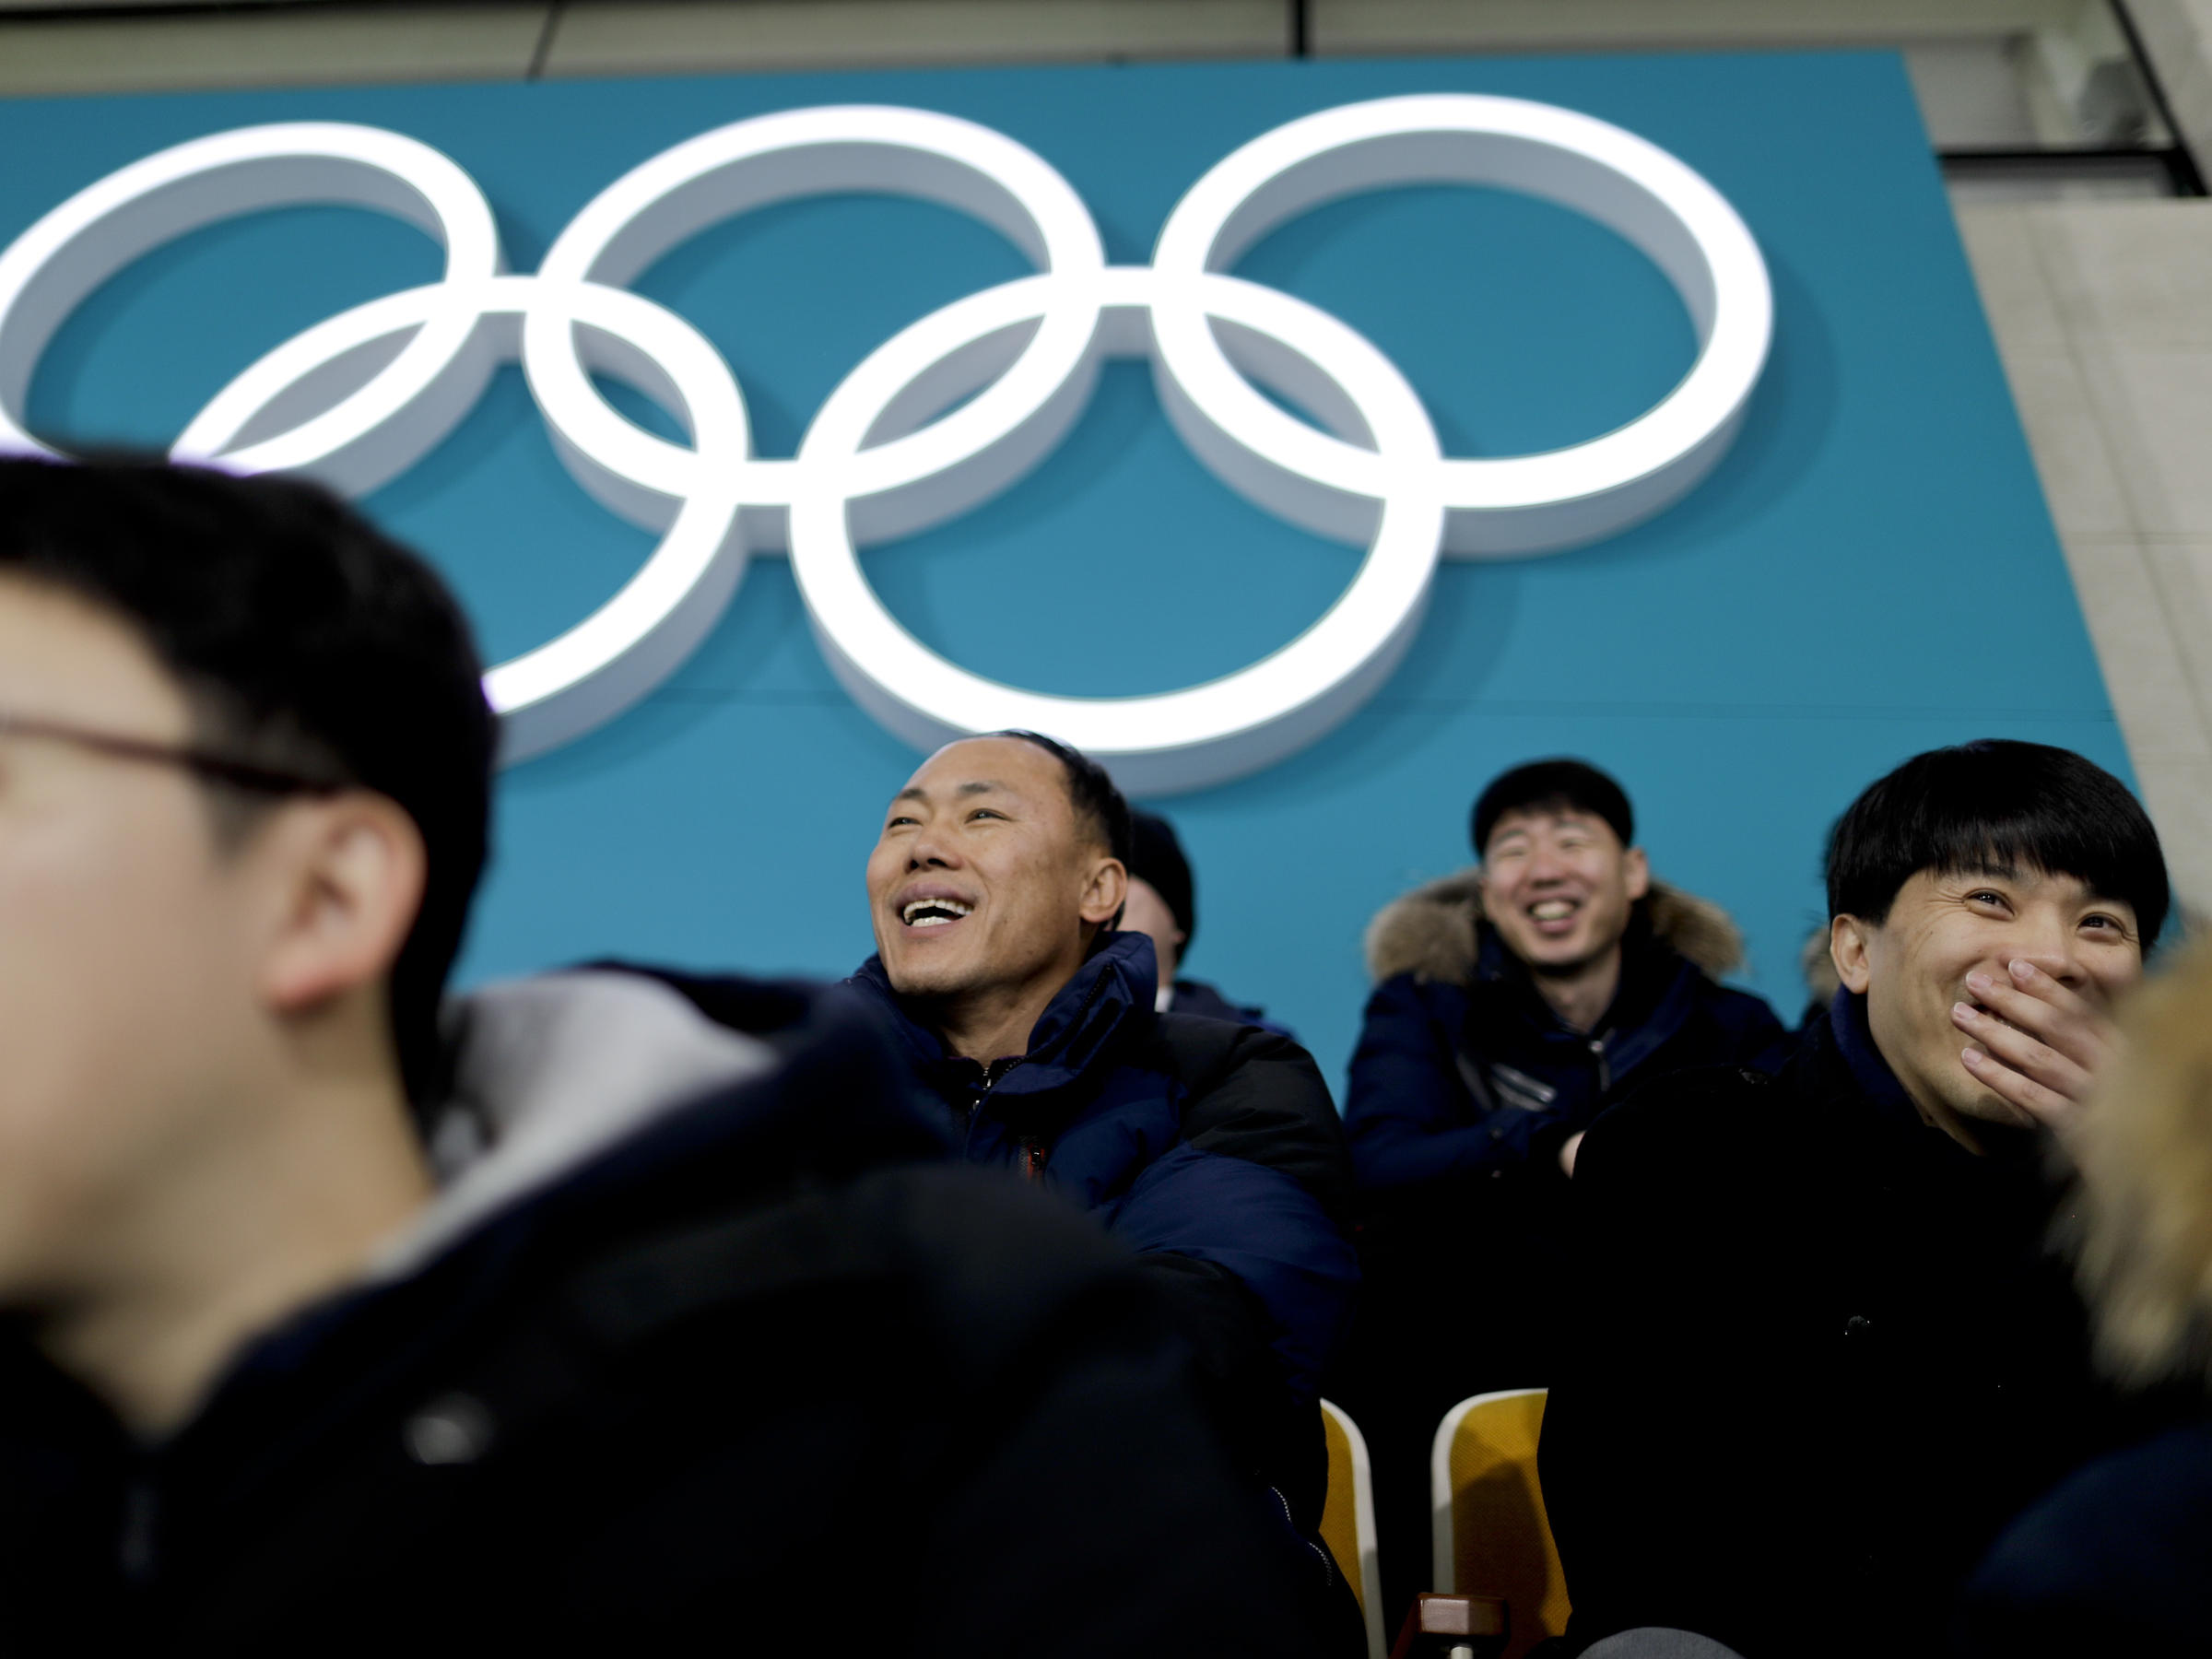 16 people injured in strong winds at Winter Olympic Games